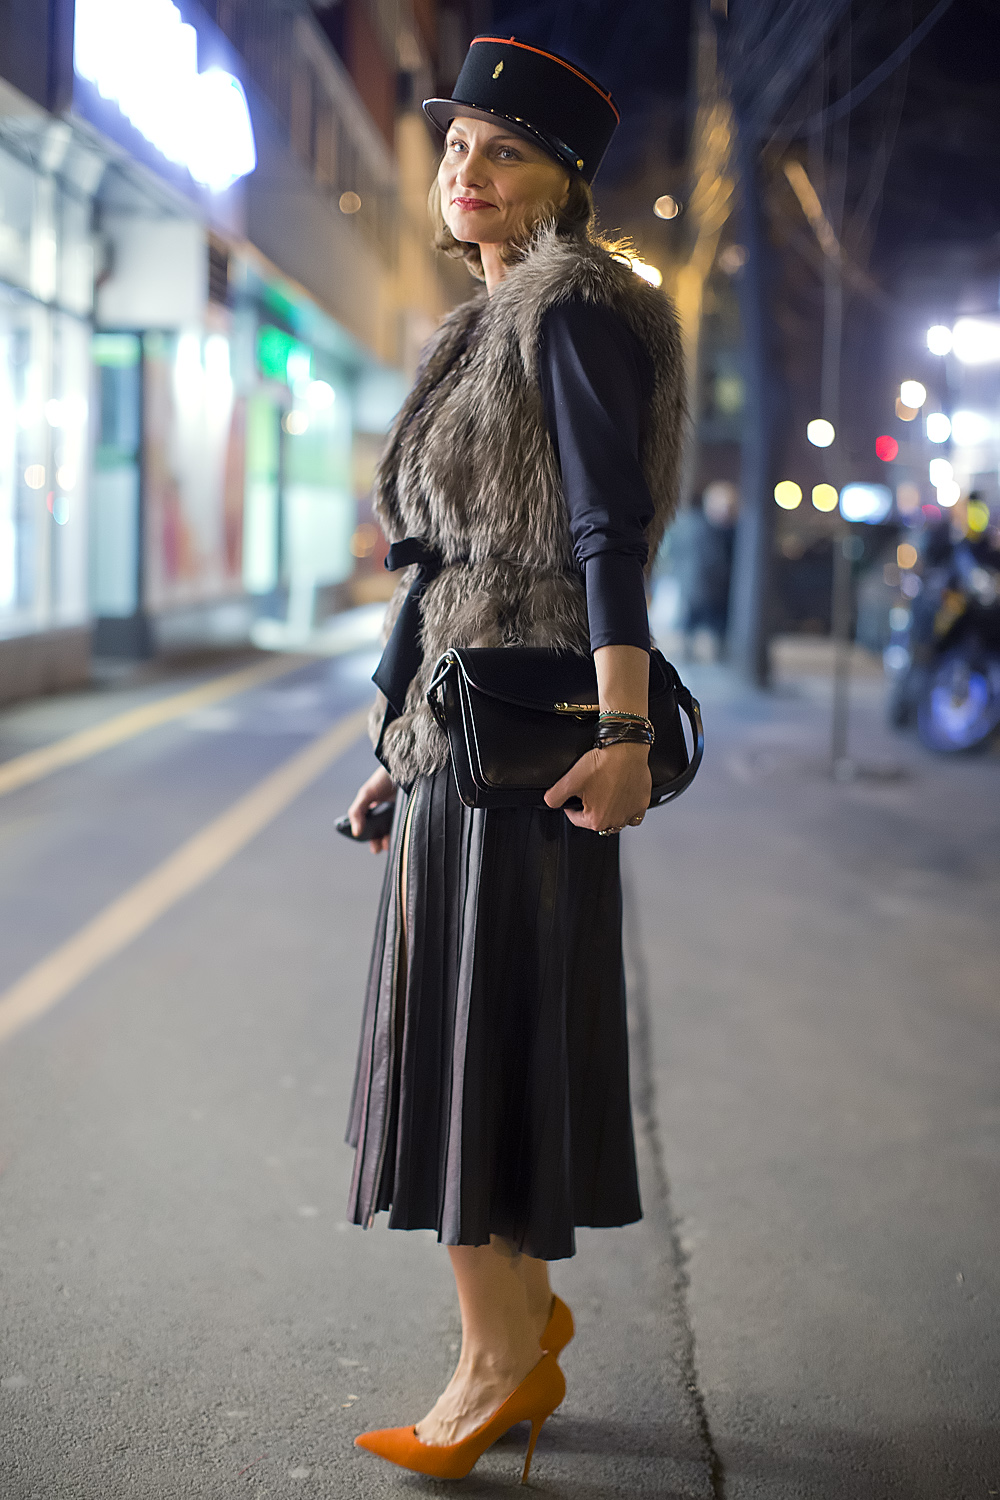 Street Fashion Bucharest Evening